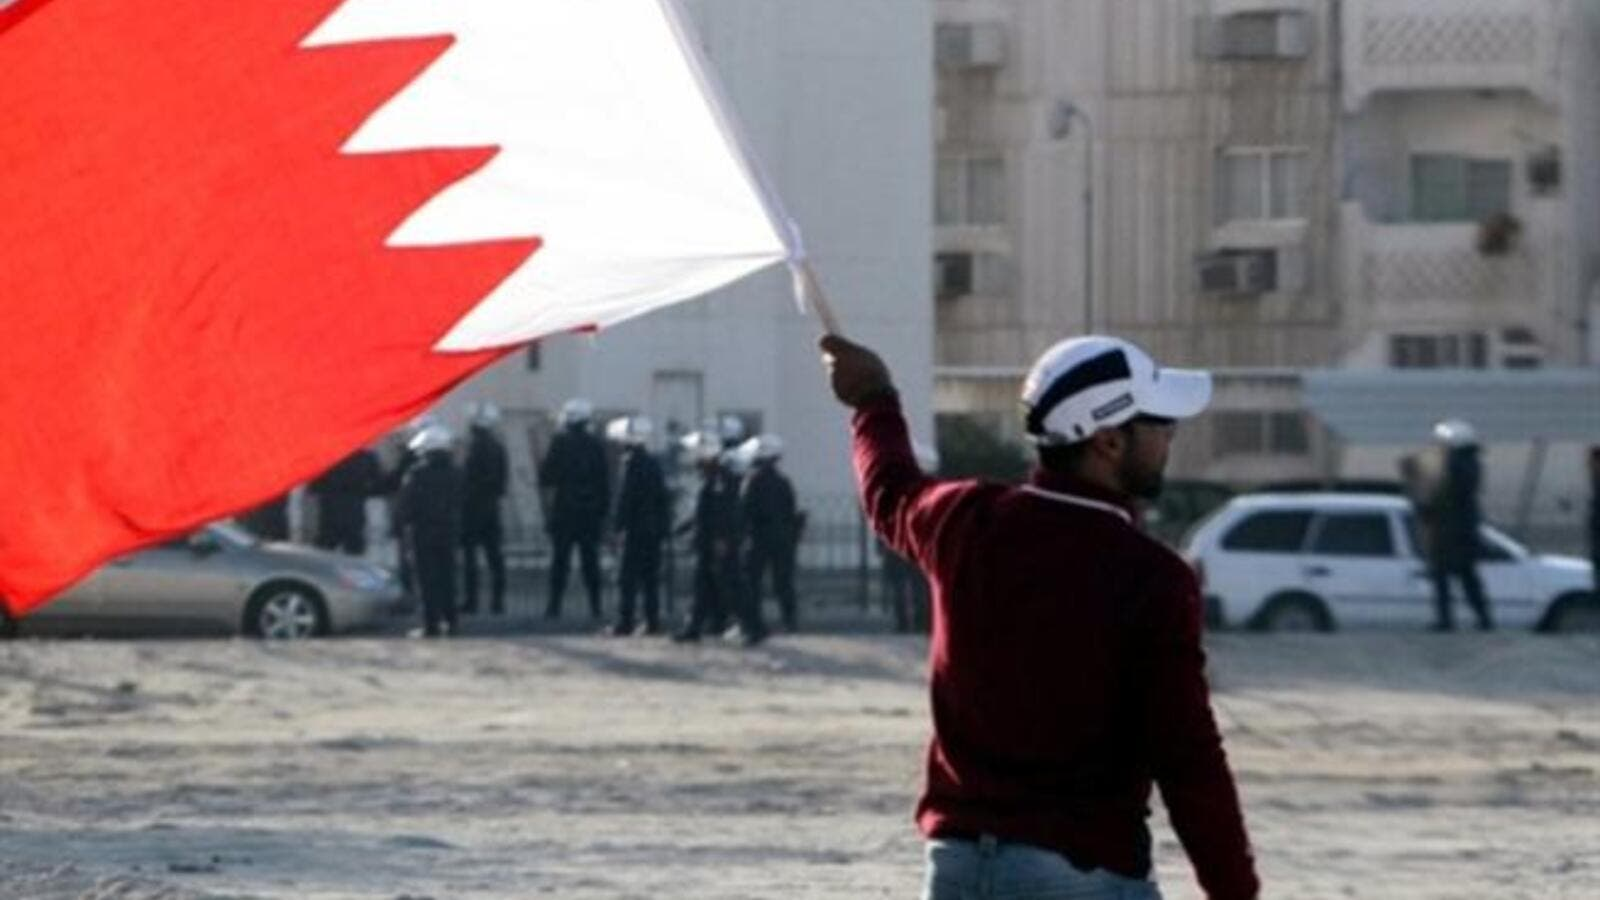 According to a report released by the Bahrain Center for Human Rights (BCHR), there were 187 children among those arrested by regime forces in 2016. (File/Photo)